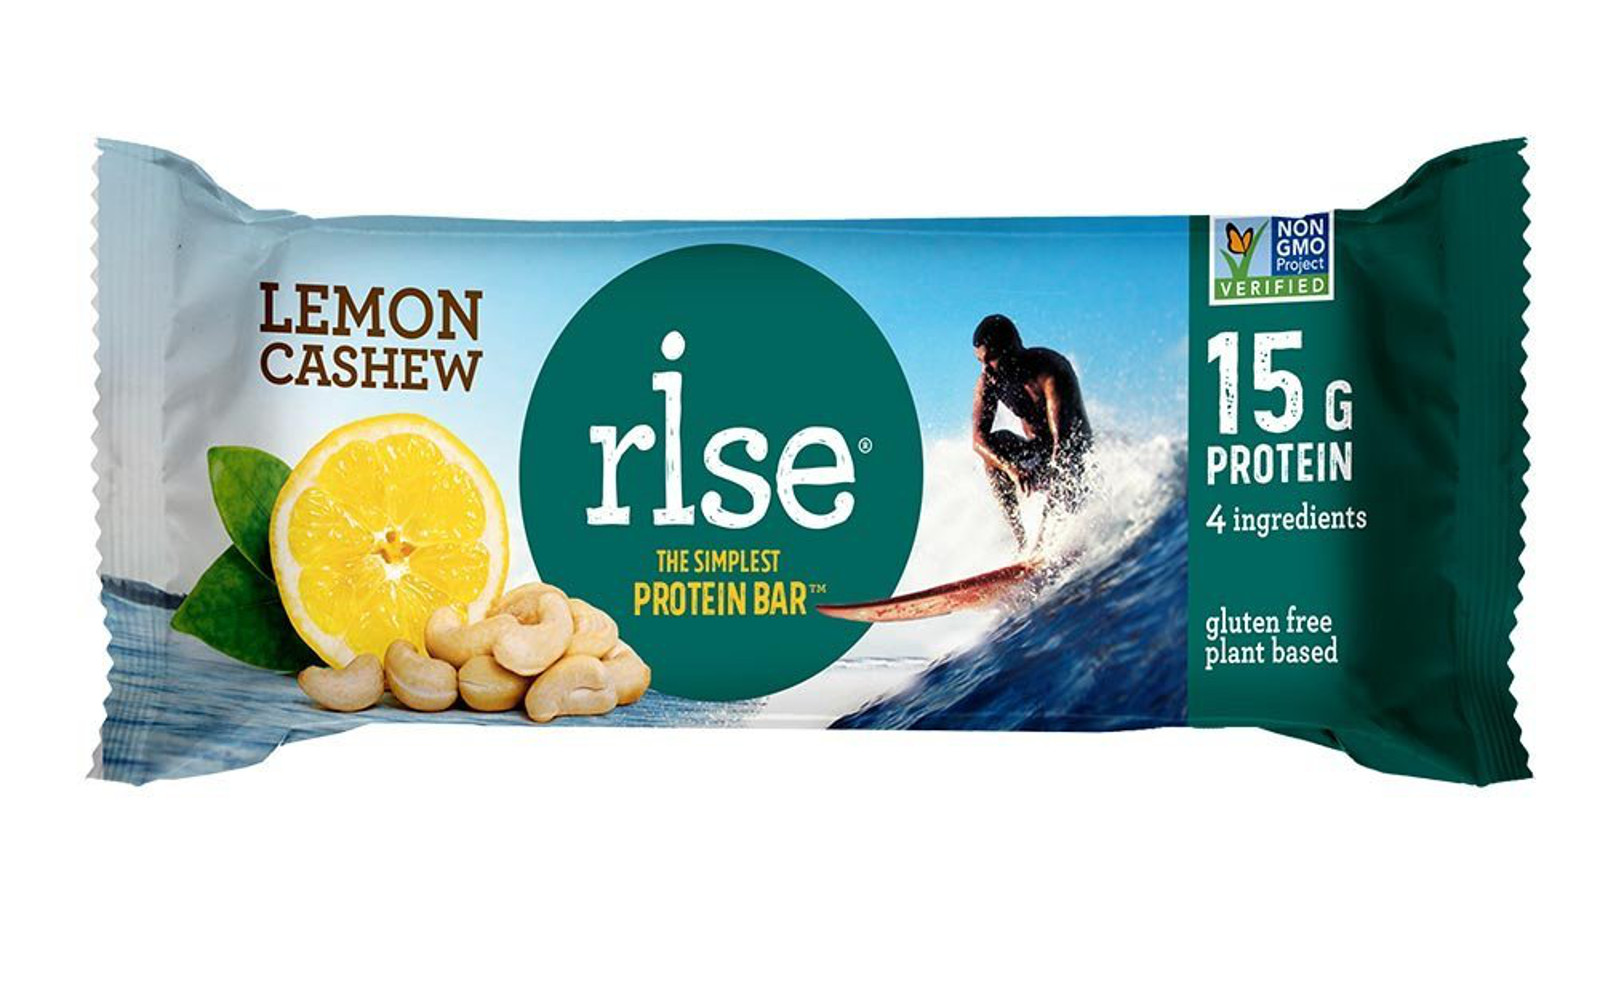 Looking For A Bar Thatu0027s Minimally Processed, But Still High In Protein? We  Understand The Struggle. These Rise Bar Lemon Cashew Protein Bars Are Made  From ...